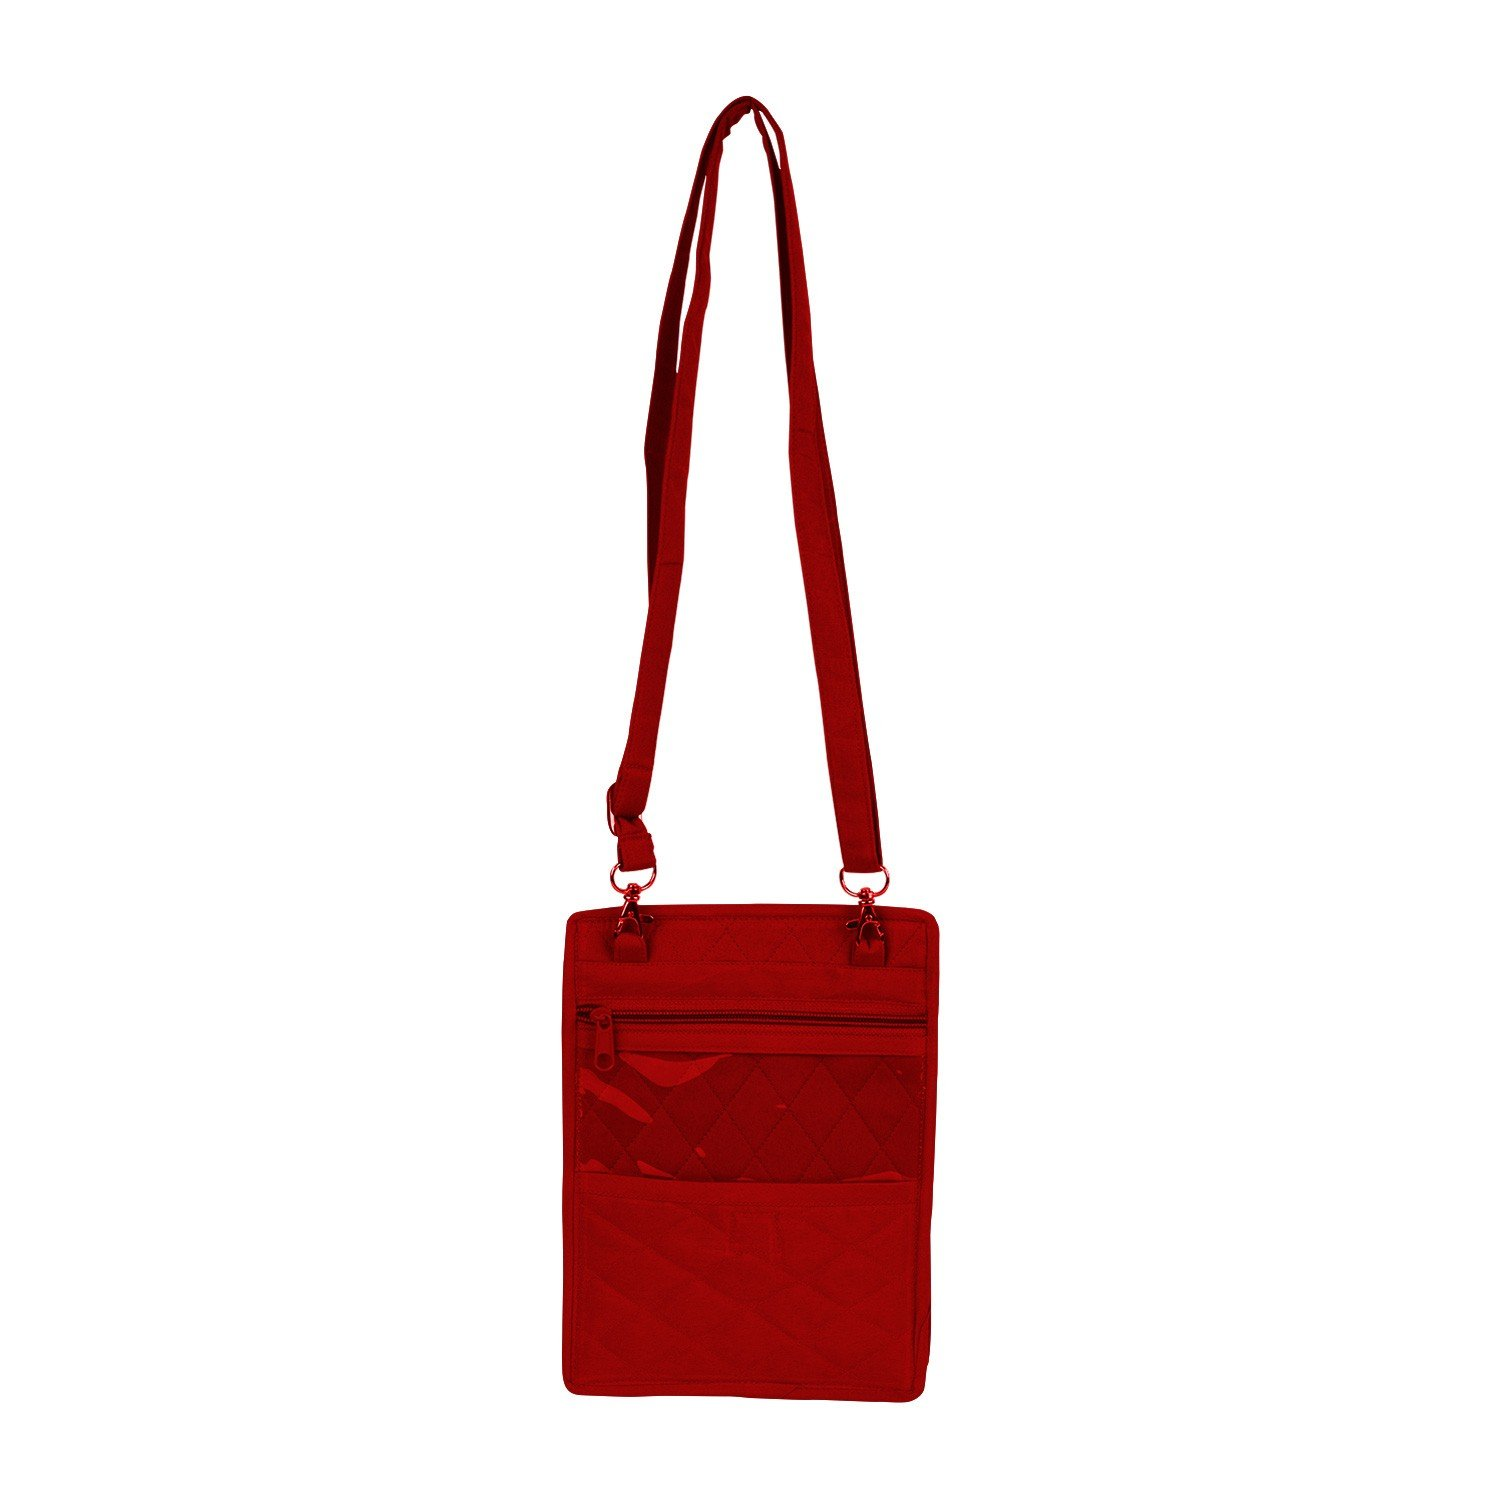 Yazzii Accessory & ID Pouch Red - 6 x 9